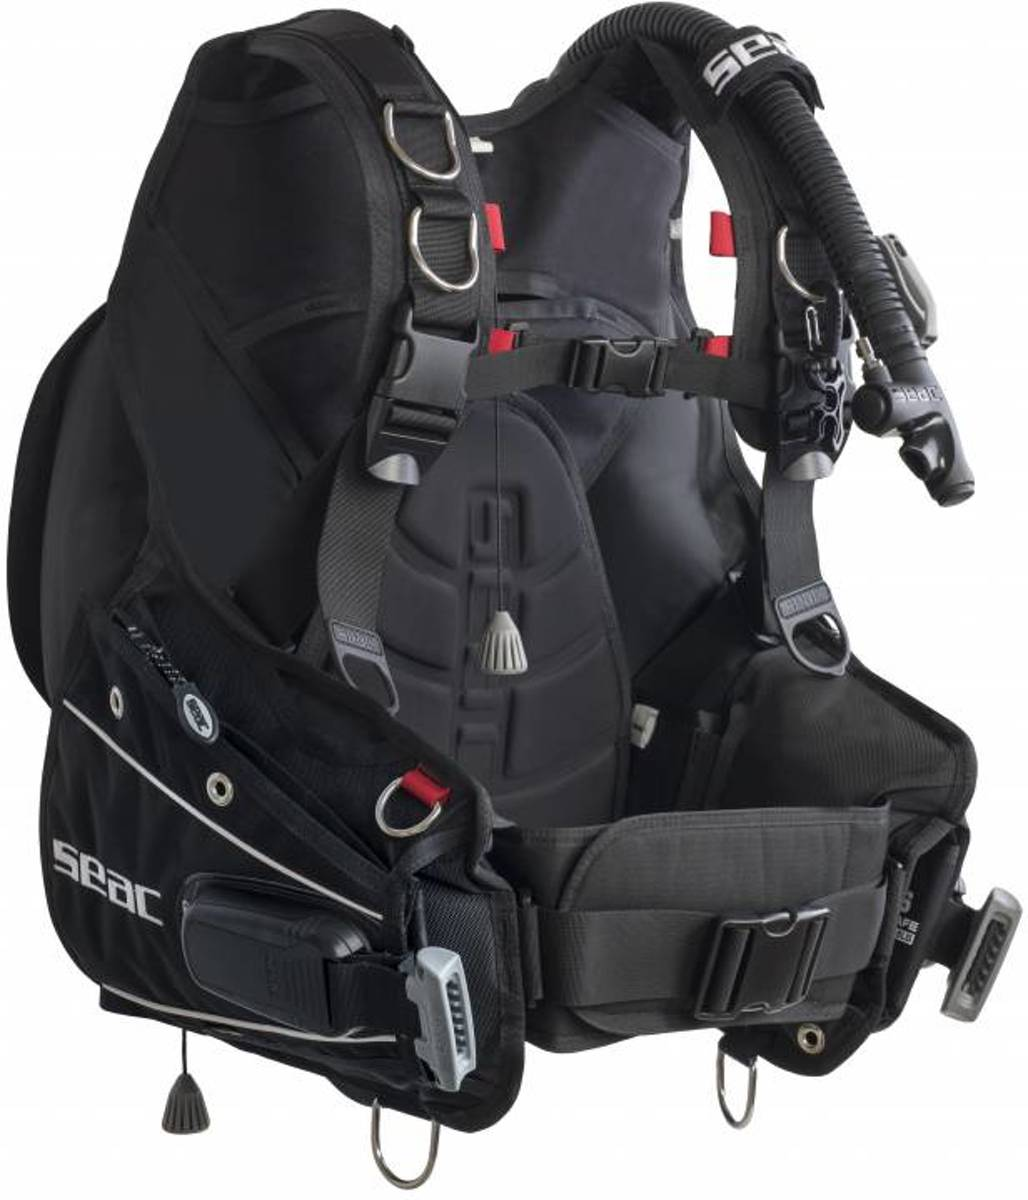 Seac Pro 2000 HD Limited Edition Trimvest - maat L